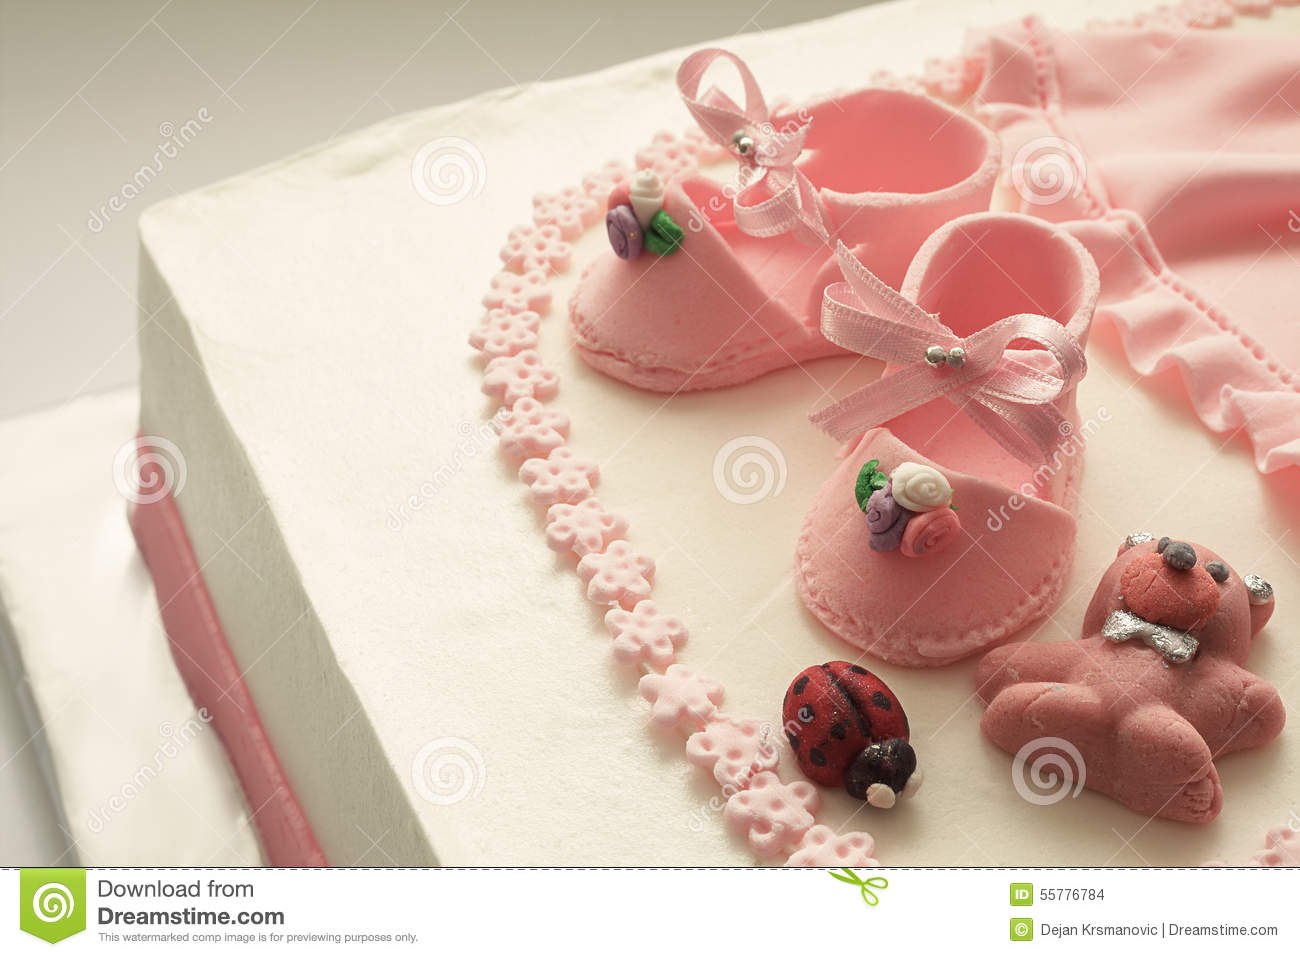 Sugar Shoes On Birthday Cake Stock Photo Image Of Dairy Girl